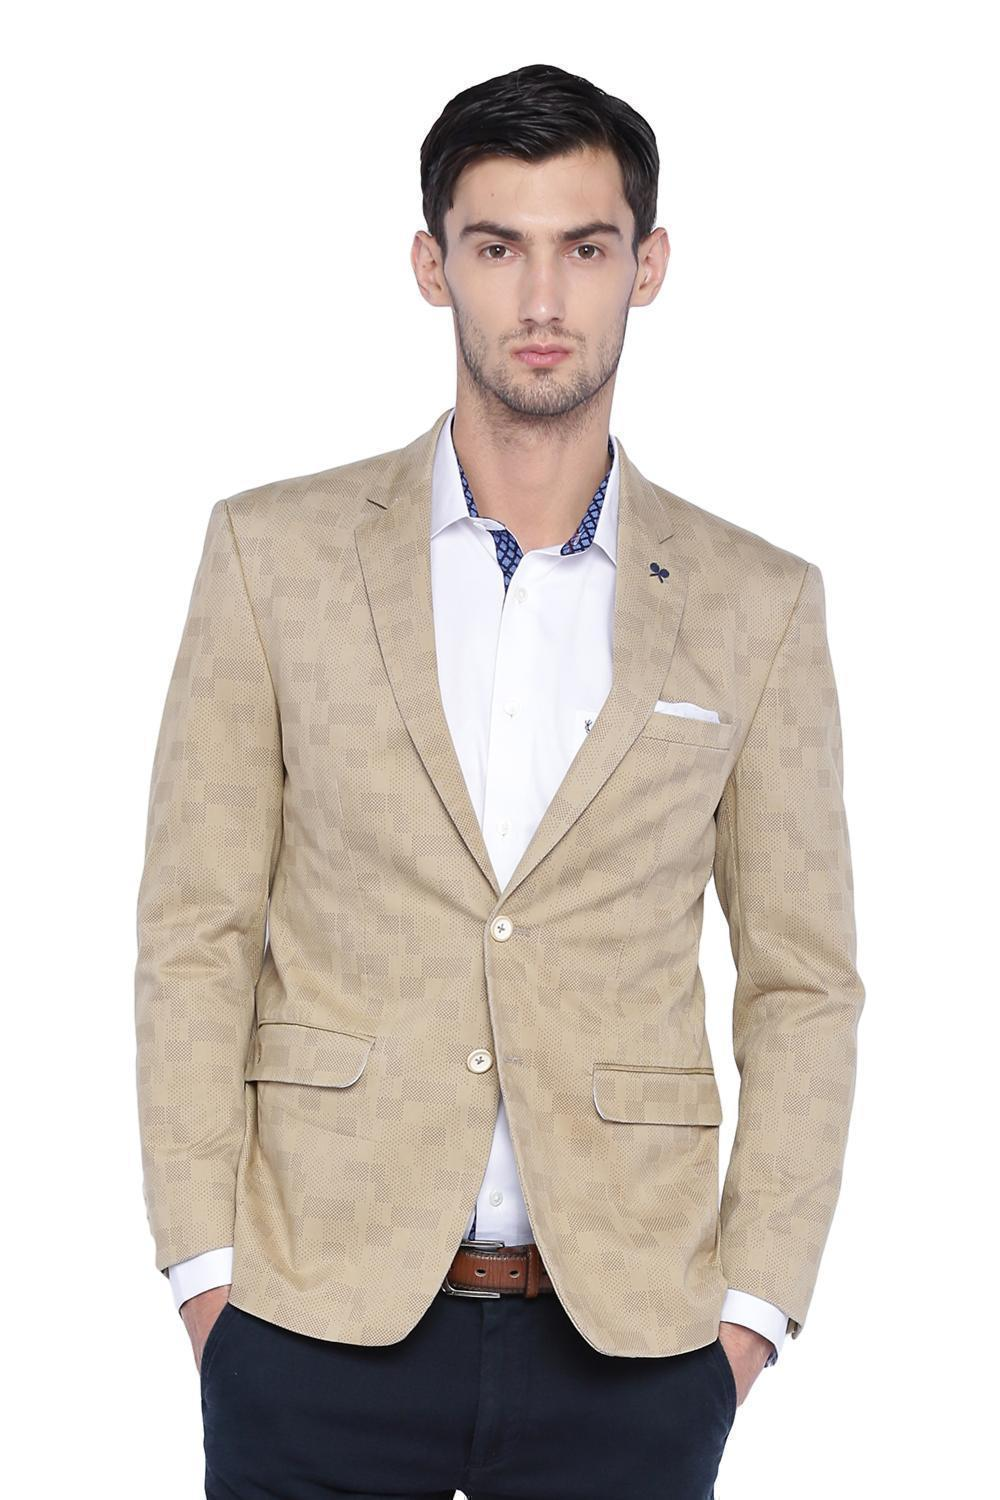 super service differently many fashionable Solly Sport Suits & Blazers, Allen Solly Khaki Wimbledon Blazer for Men at  Allensolly.com